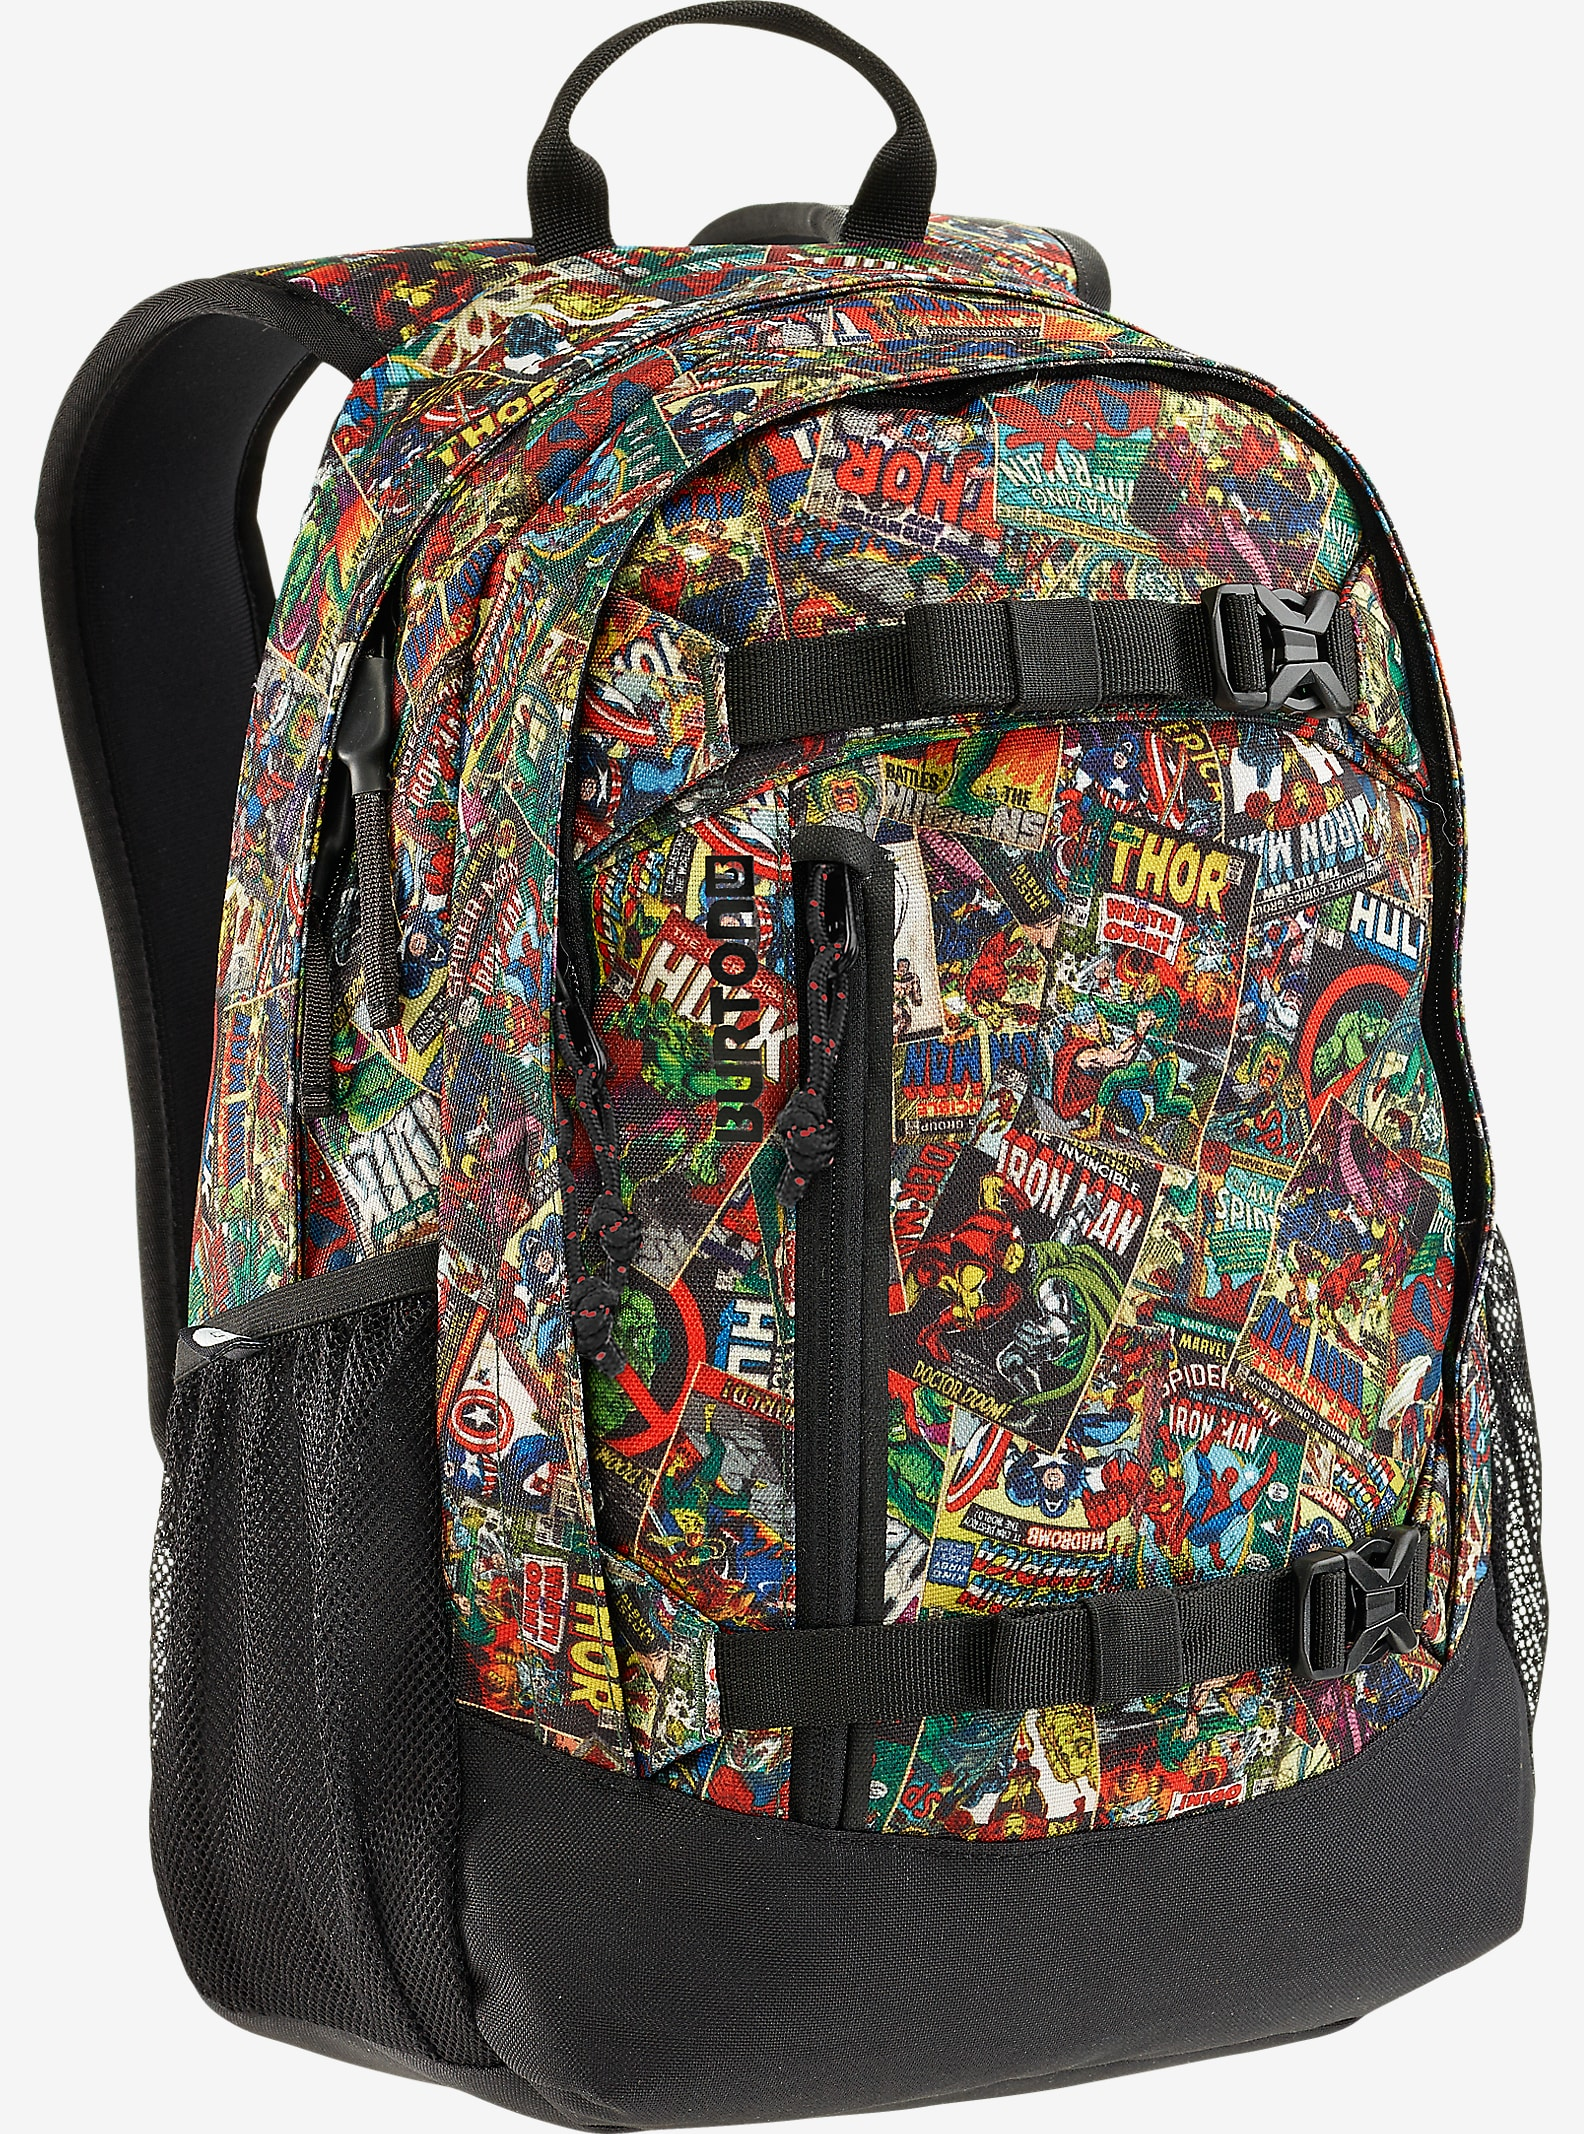 Marvel® x Burton Day Hiker 20L Backpack shown in Marvel® Print © 2016 MARVEL